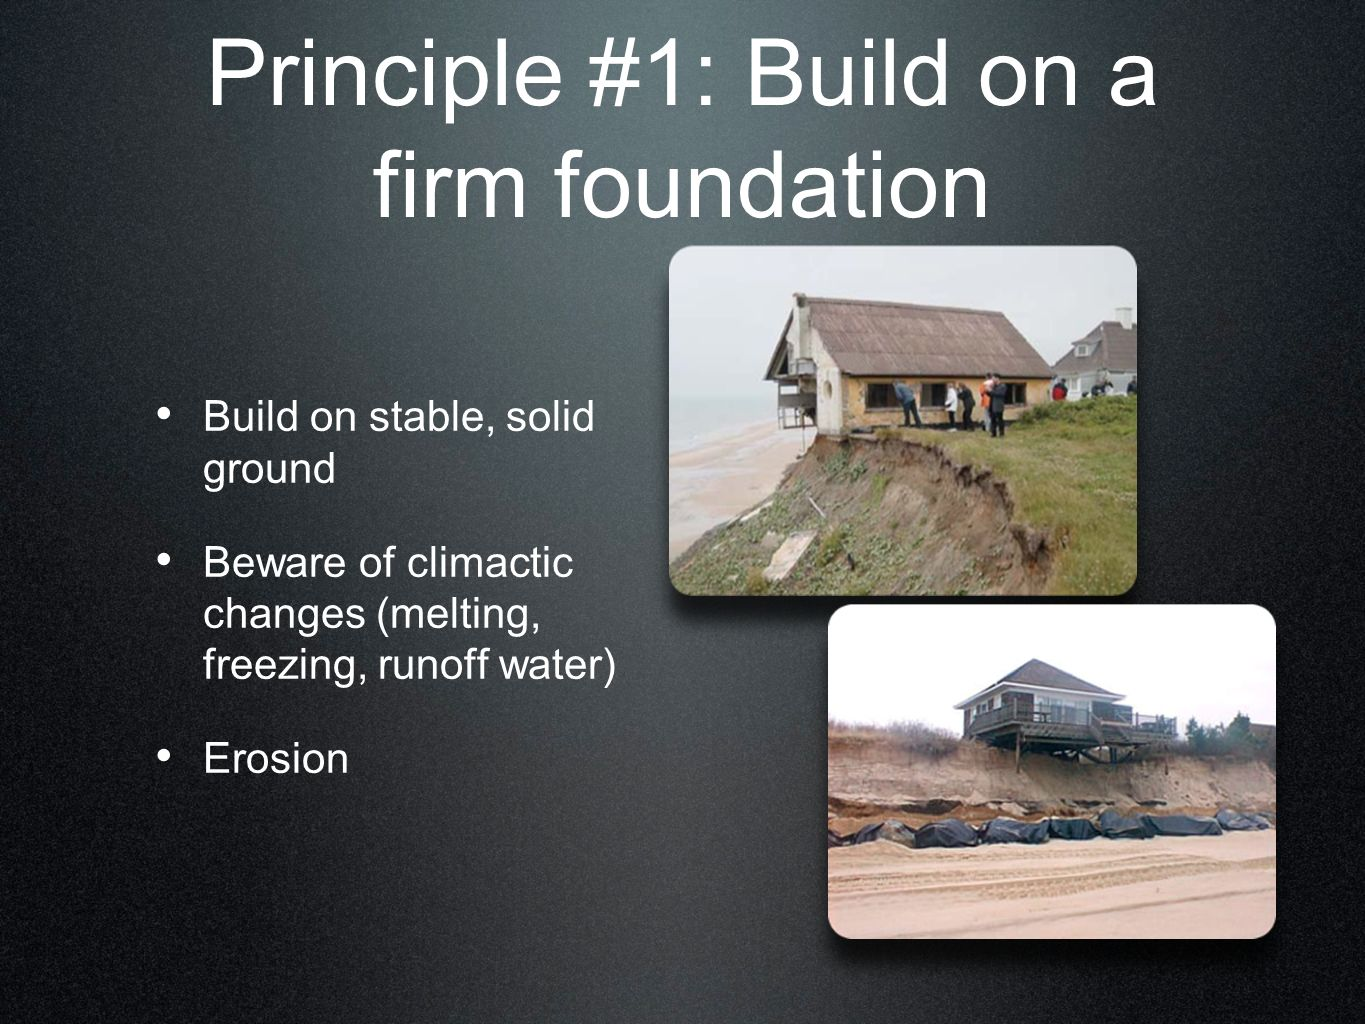 Principle #1: Build on a firm foundation